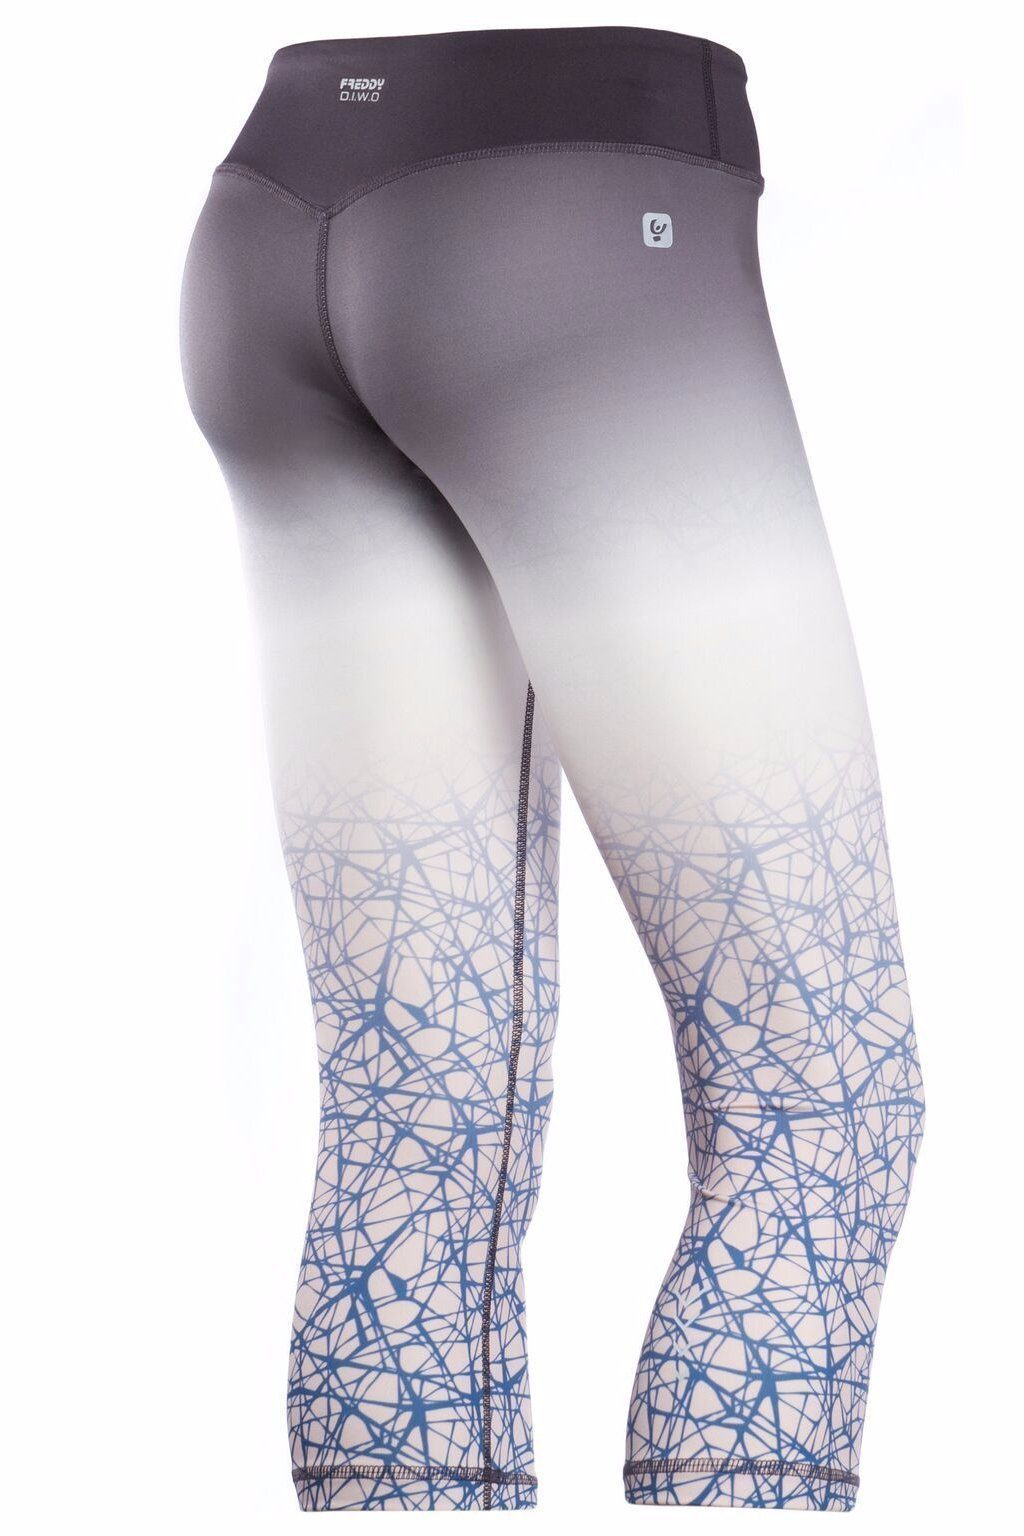 Superfit Ankle Tights Fantasy Print Fade